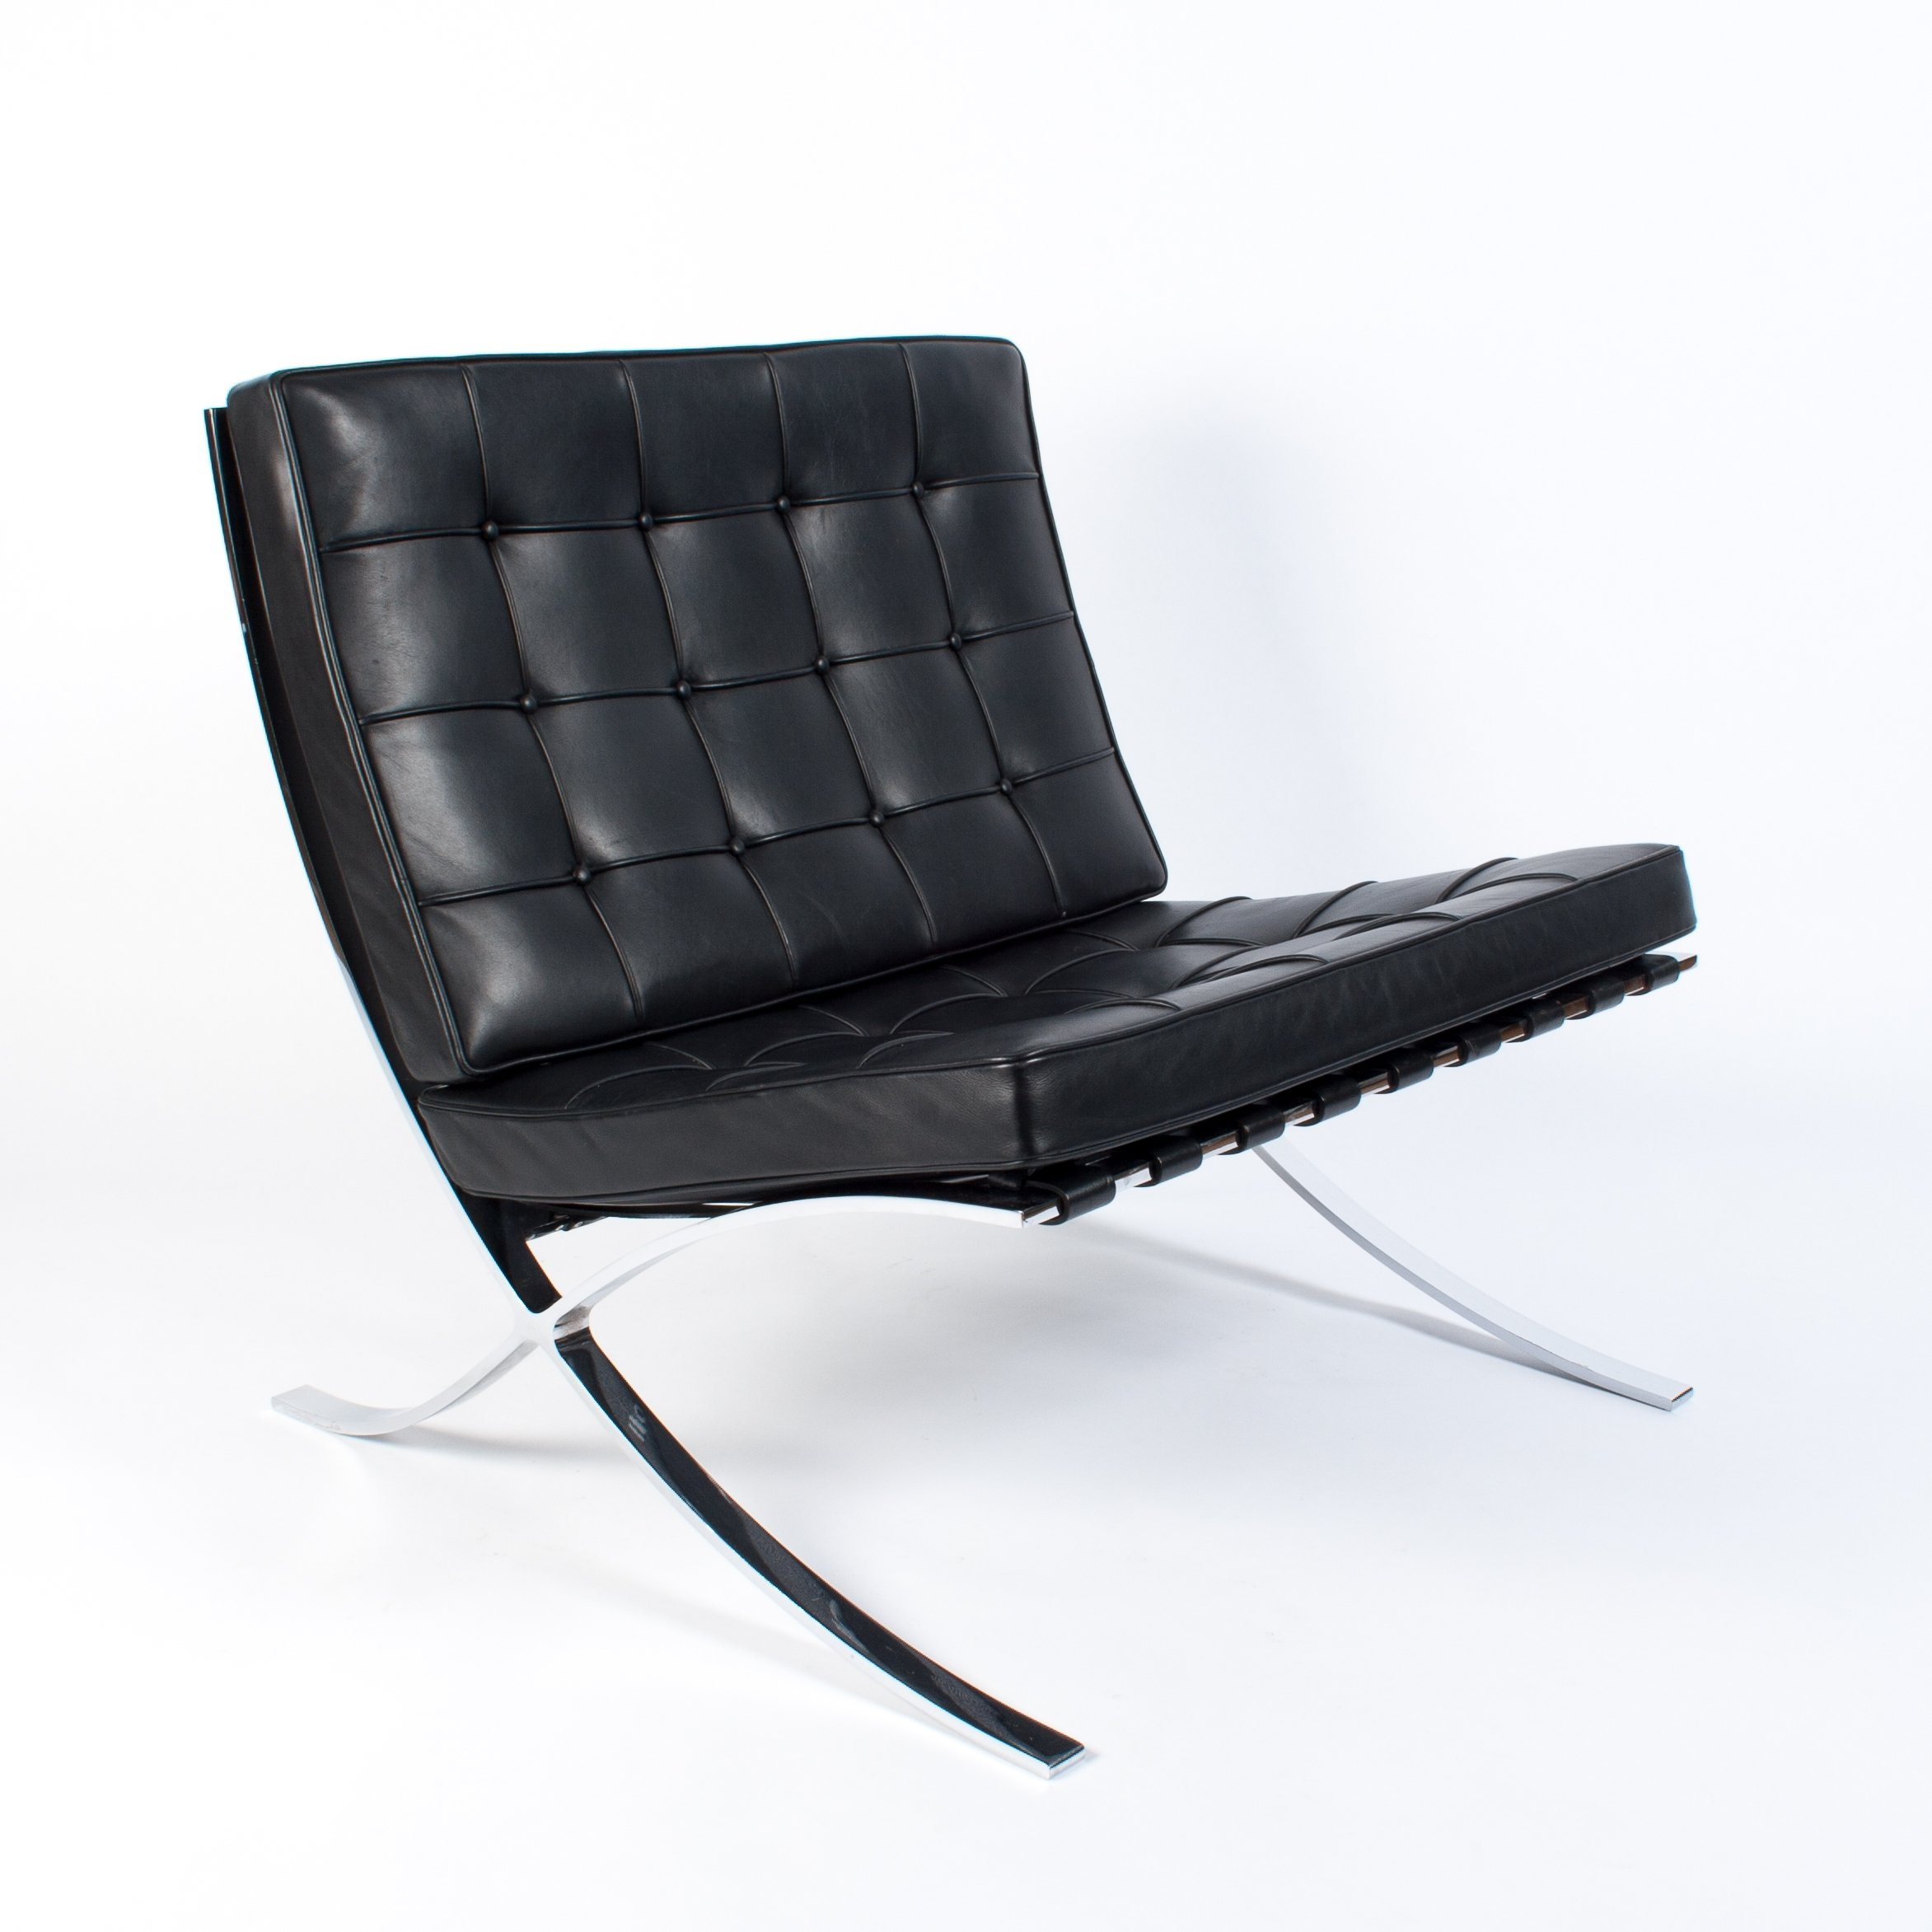 black leather barcelona lounge chair by ludwig mies van der rohe for knoll 1997 76116. Black Bedroom Furniture Sets. Home Design Ideas